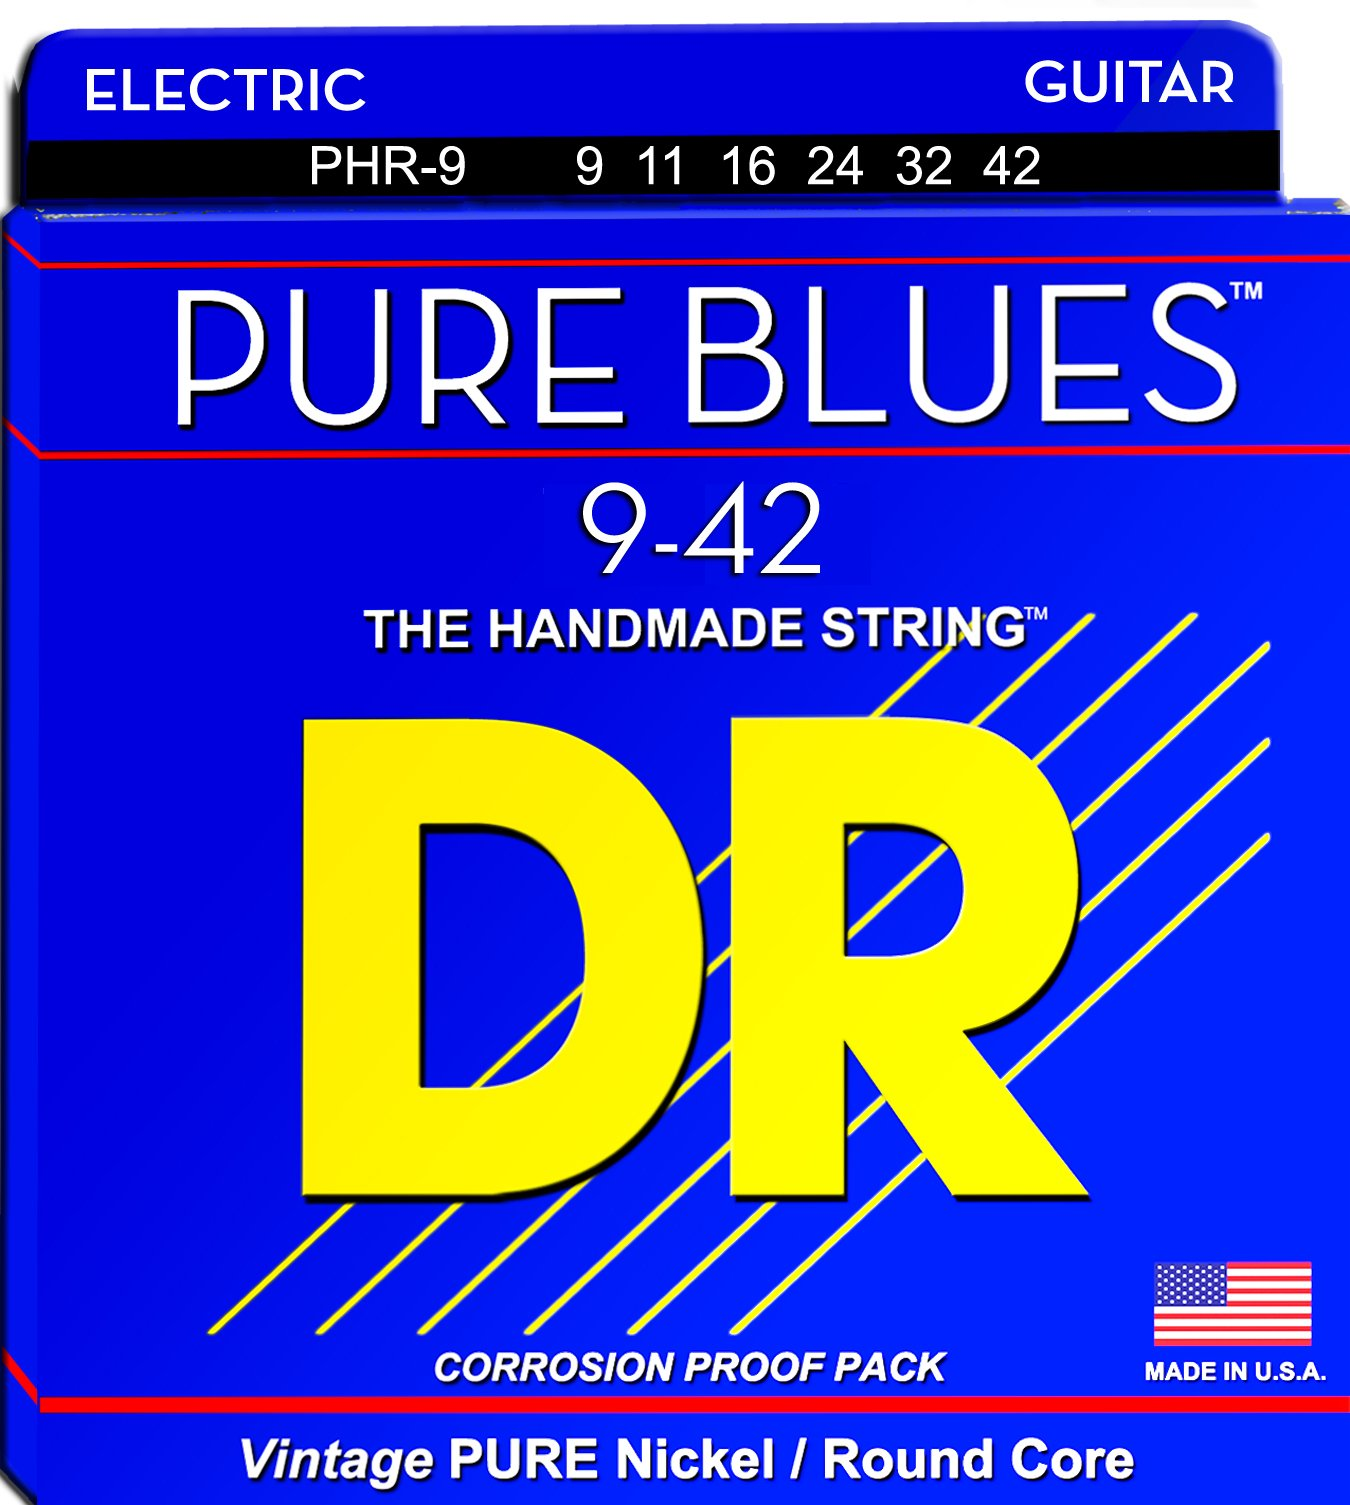 DR Strings PURE BLUES PHR-9 Electric Guitar Strings, Lite, 9-42